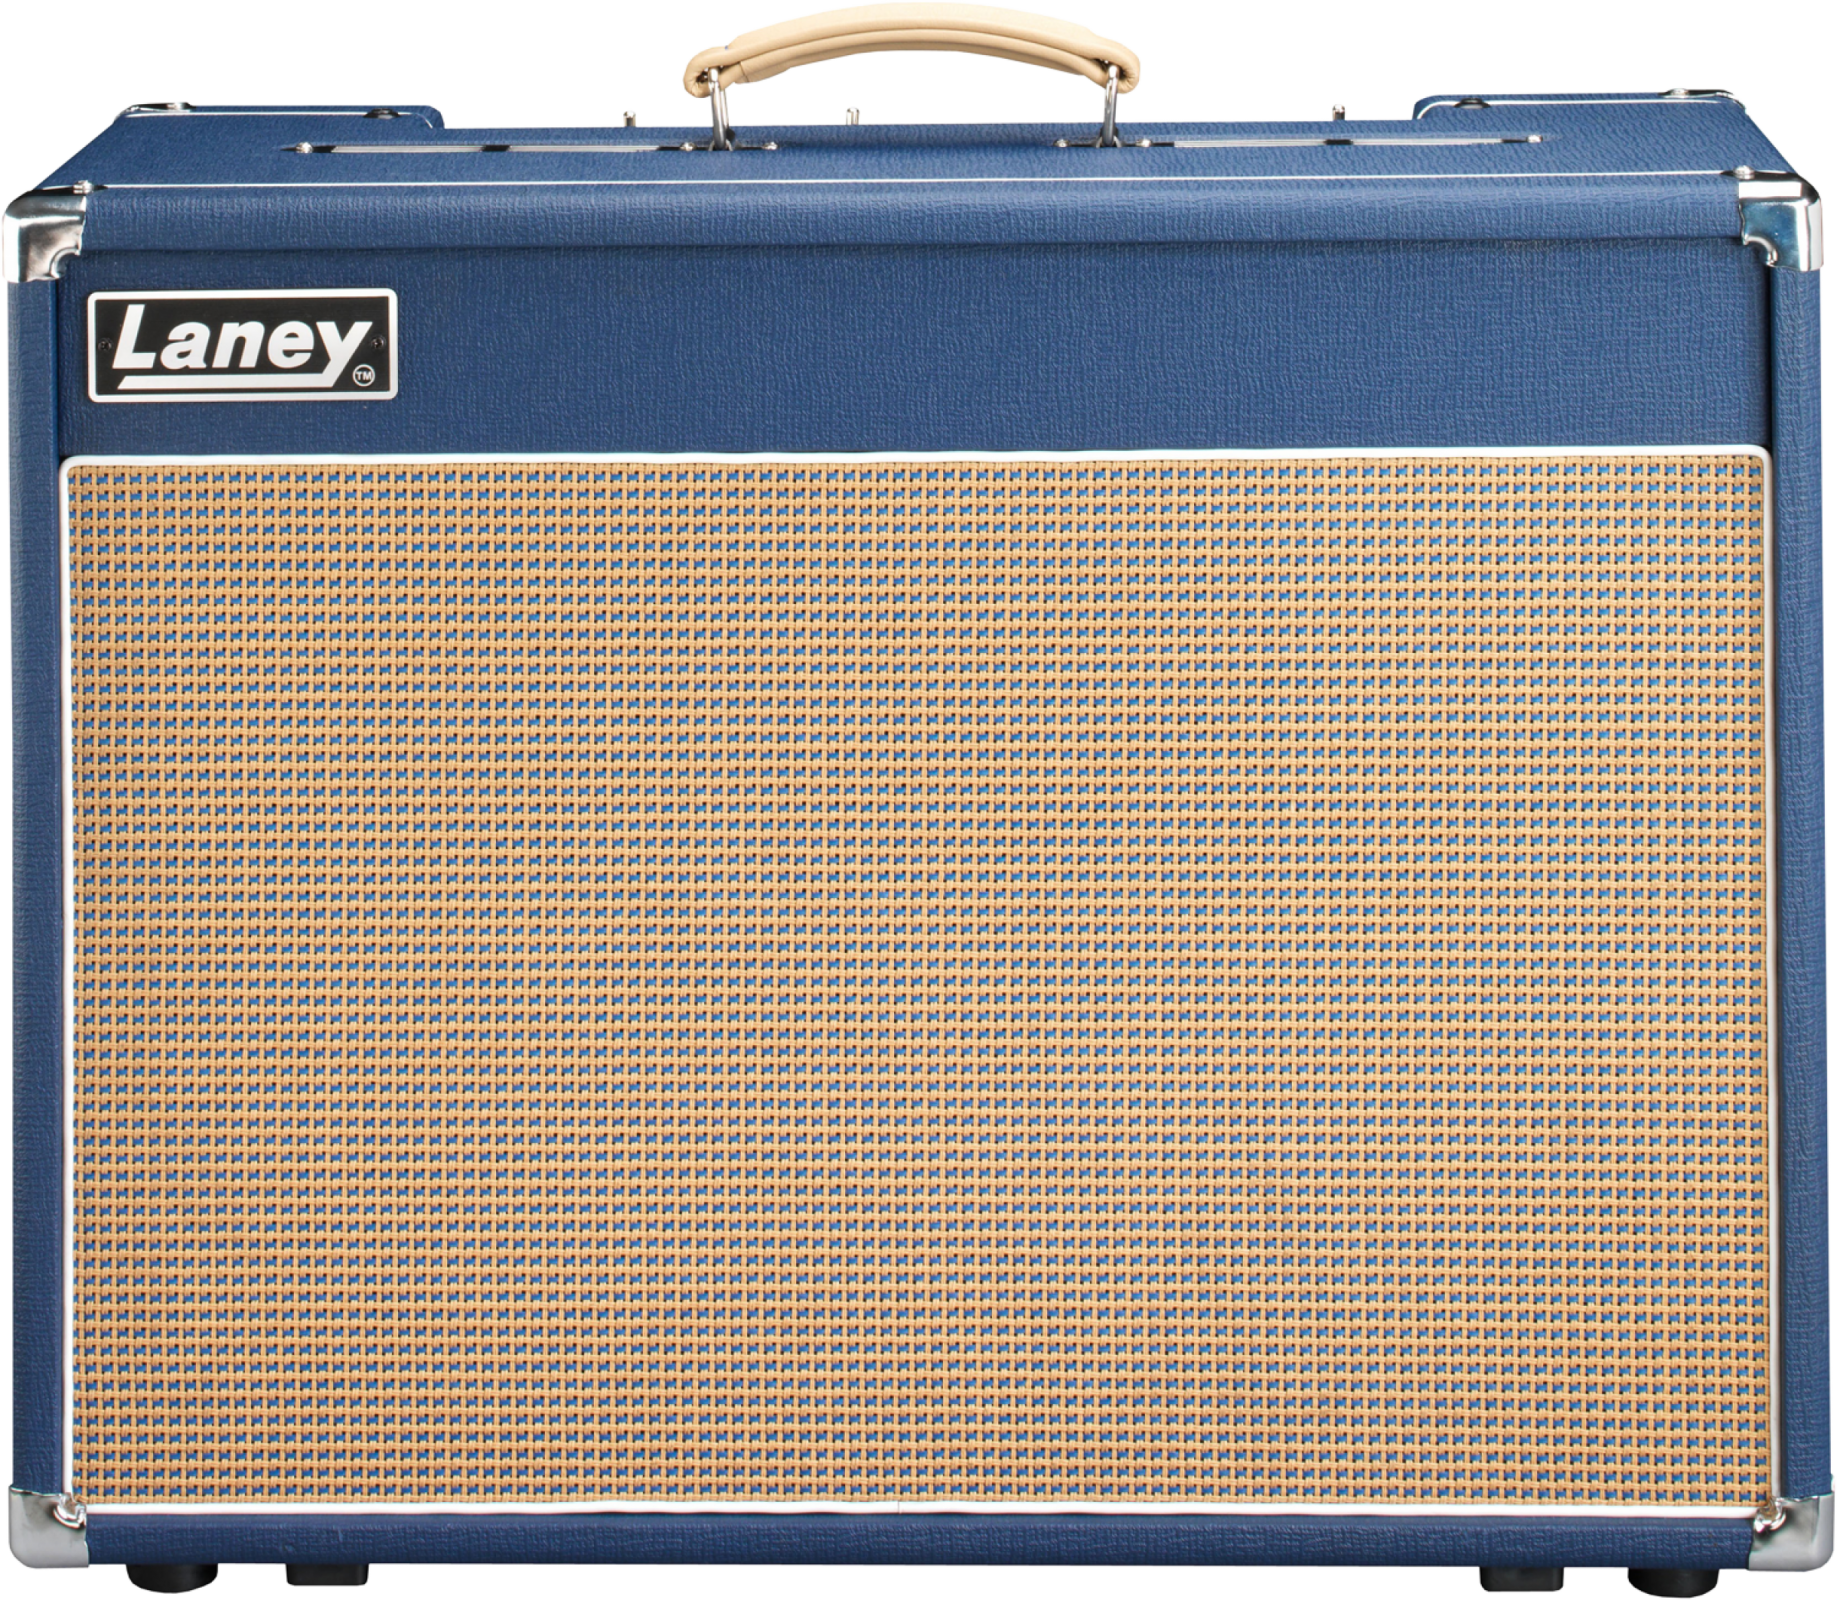 LANEY LIONHEART L20T-212 TUBE GUITAR AMPLIFIER COMBO, 20W 2x12 CELESTION G12H, CLASS A